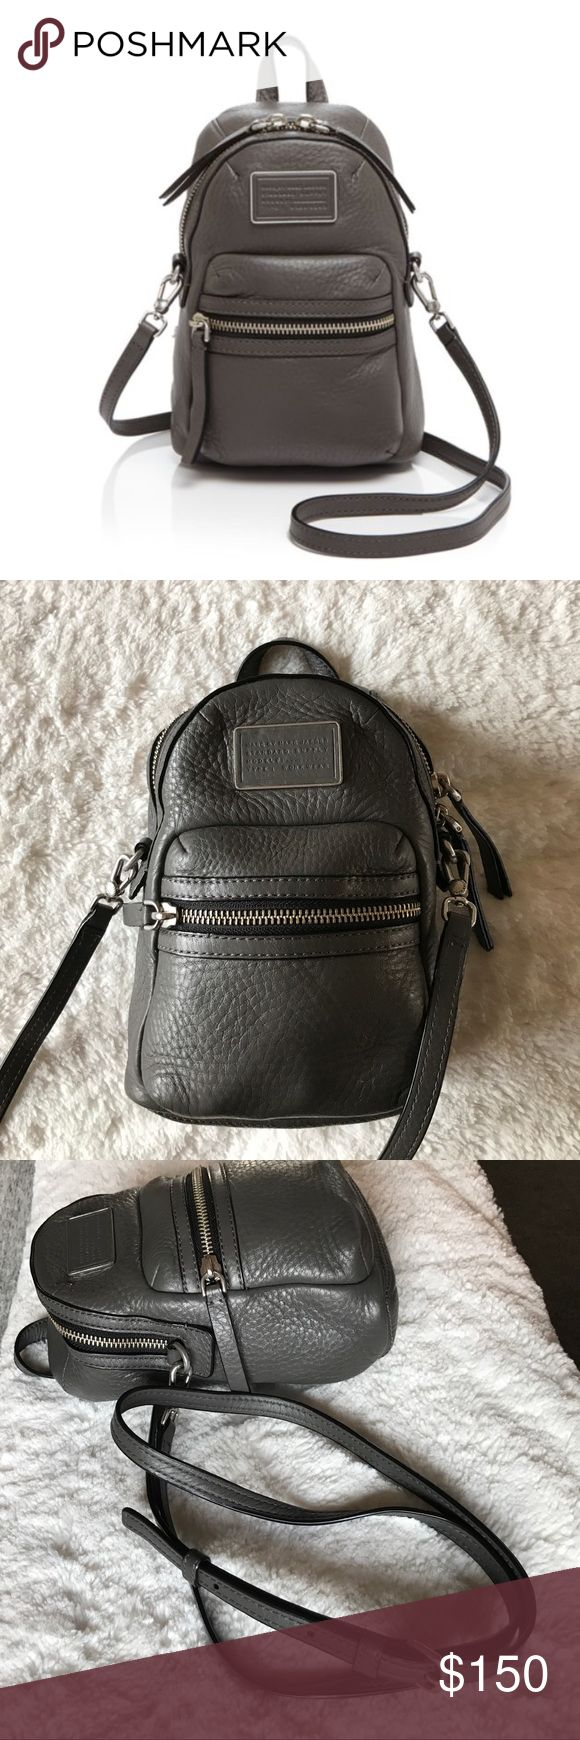 """Marc by Marc Jacobs Domo Biker Crossbody Bag Petite Backpack style. Used only for a short while- great condition. Faded aluminum color with silver hardware. Zip pocket and logo plaque in front. 2-way top zip and lined, 1 pocket interior. Optional, adjustable shoulder strap. Leather cowhide. 8.75"""" H x 6"""" L x 3.5"""" D. 22"""" strap drop. Marc By Marc Jacobs Bags Crossbody Bags"""